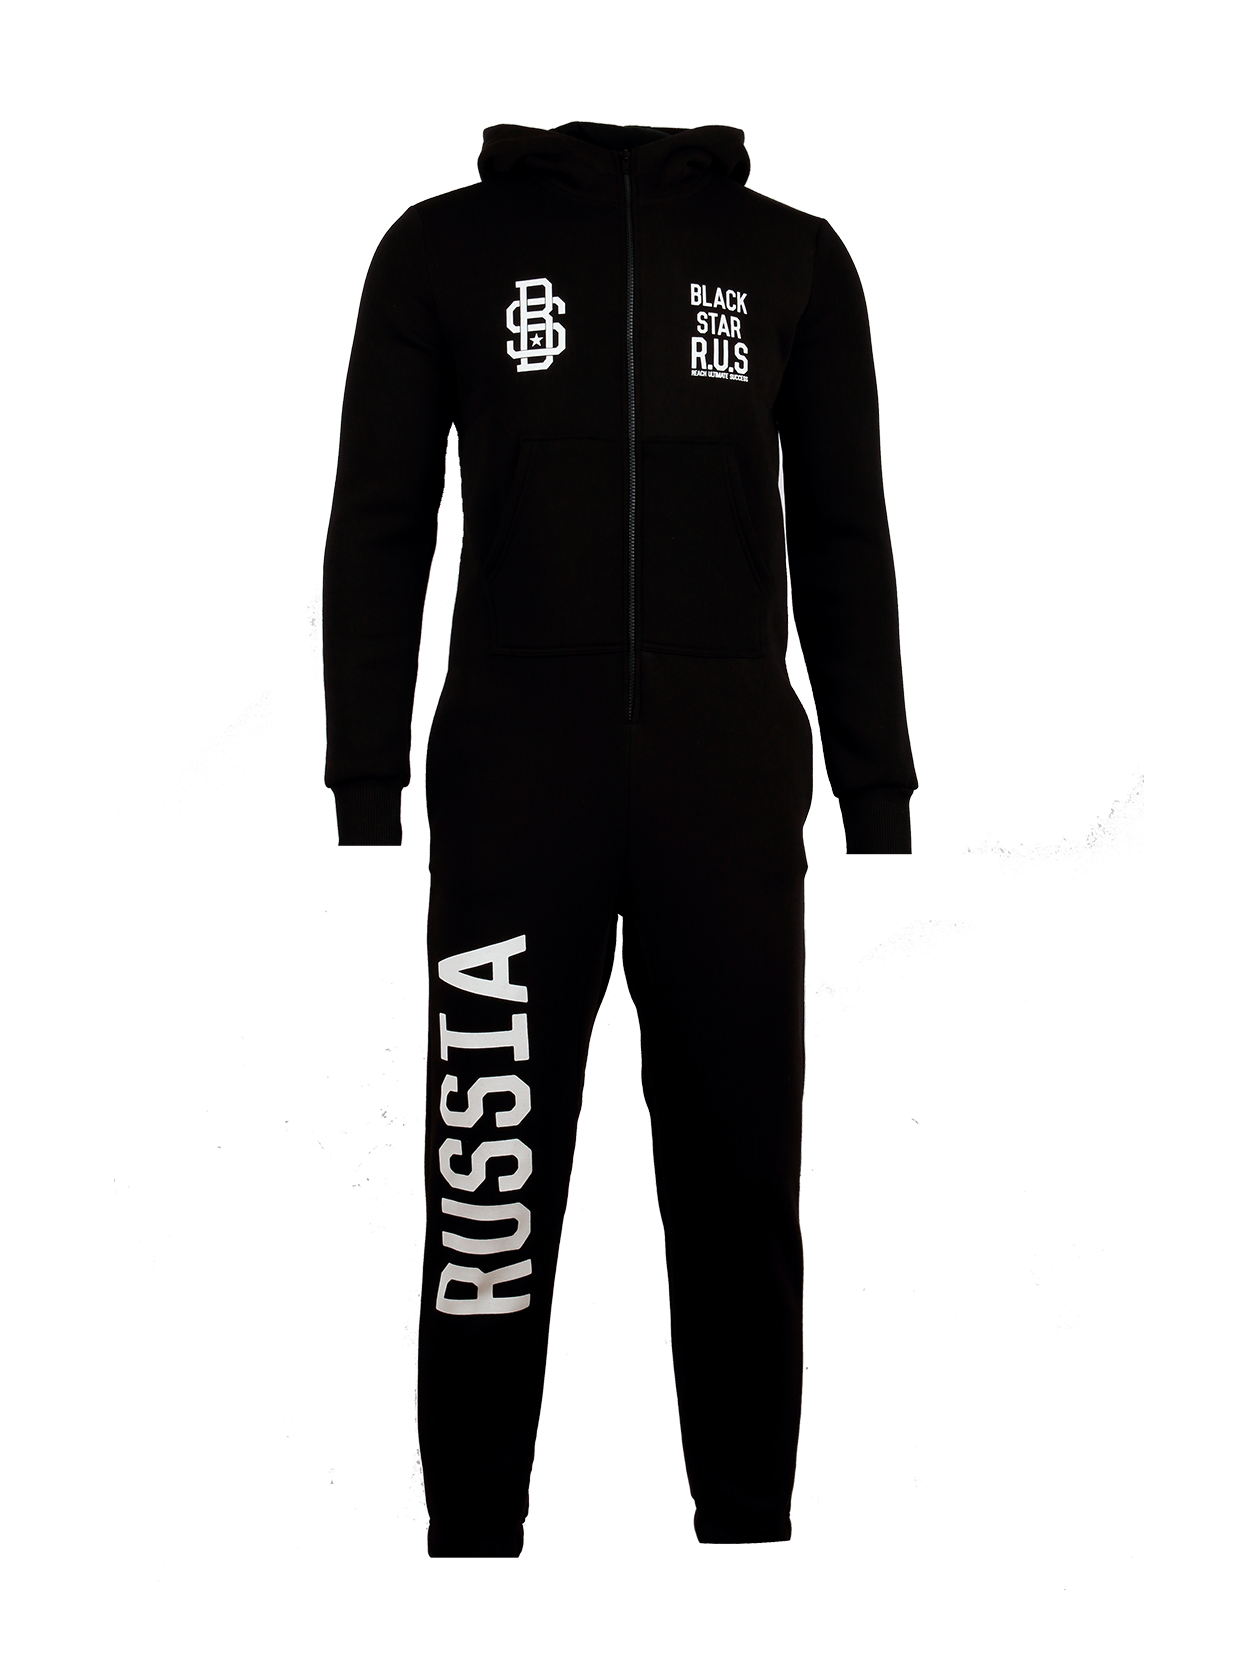 UNISEX ONESIE BLACK STAR R.U.S.Unisex onesie in black by Black Star Wear. Front zip and splitted front pocket. Small Black Star logos on the chest, Russia lettering on the right side and a two-headed eagle on the back. Cotton blend.<br><br>size: XXS<br>color: Black<br>gender: female